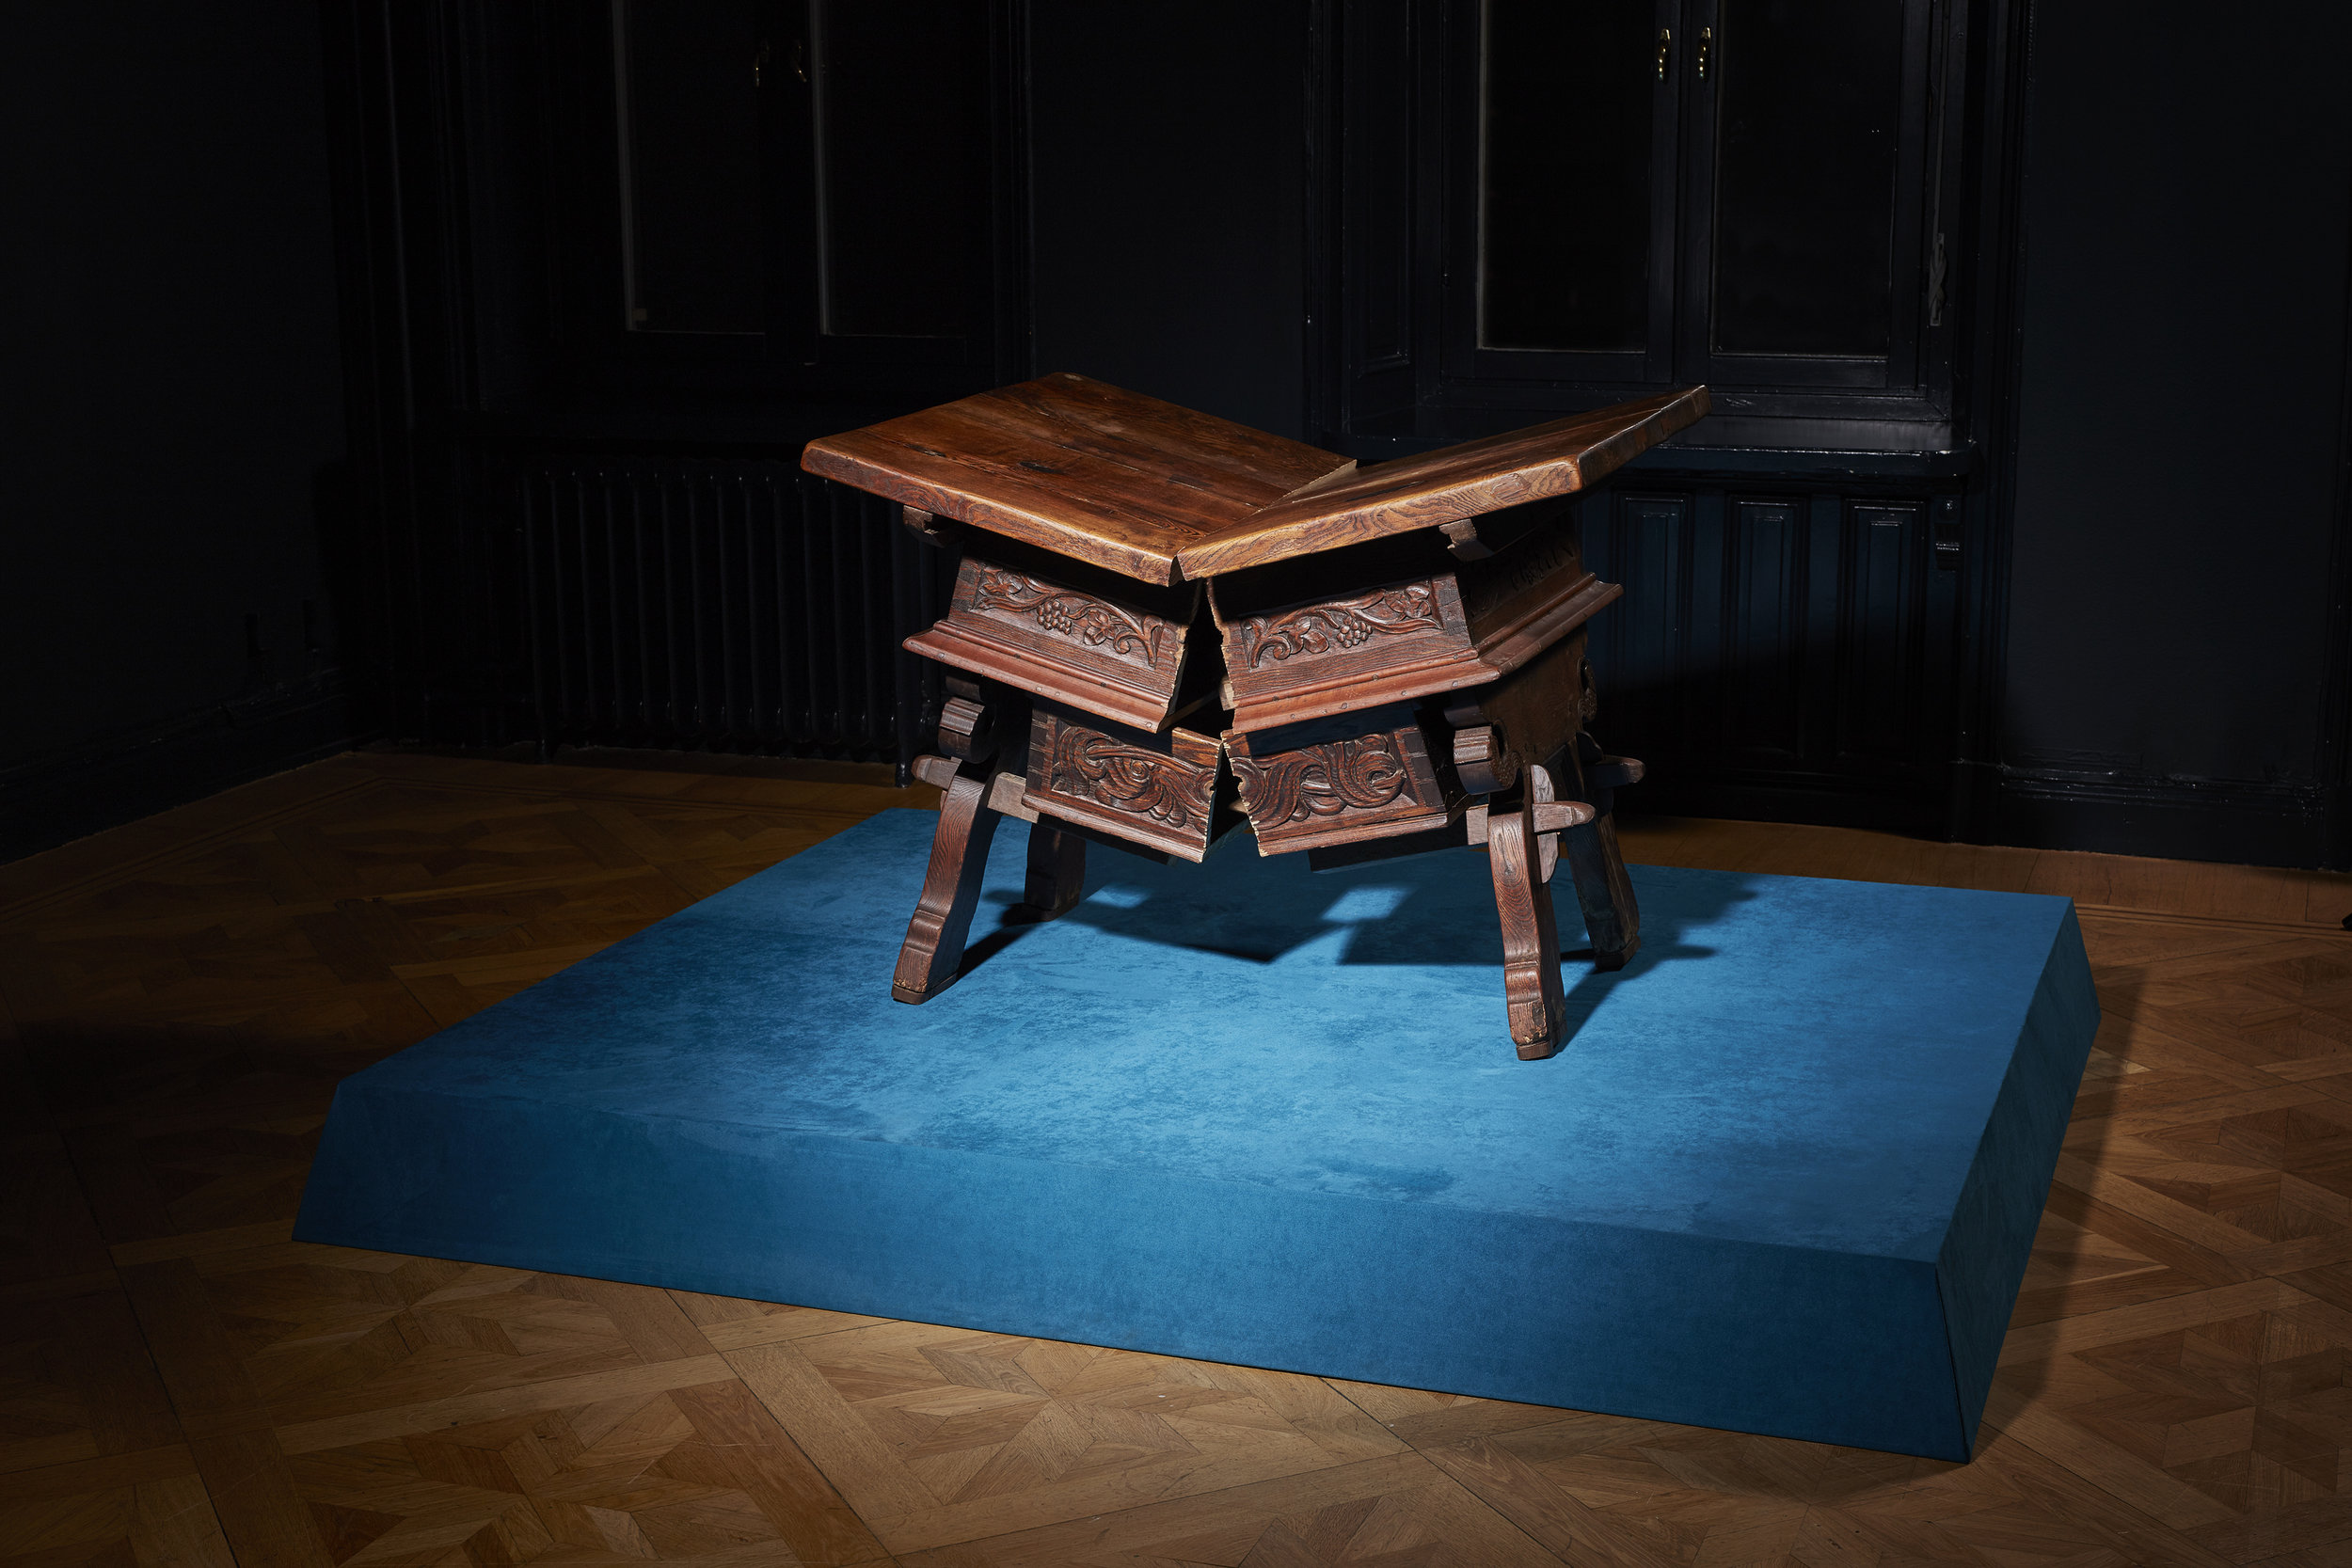 Goldin+Senneby   Banca Rotta (Central Europe, Late Baroque, oak)  2012/2017 Money-changer's table sawed in half Est. 110 x 94 x 85 cm Podium: wood, textile, 210 x 177 x 20 cm